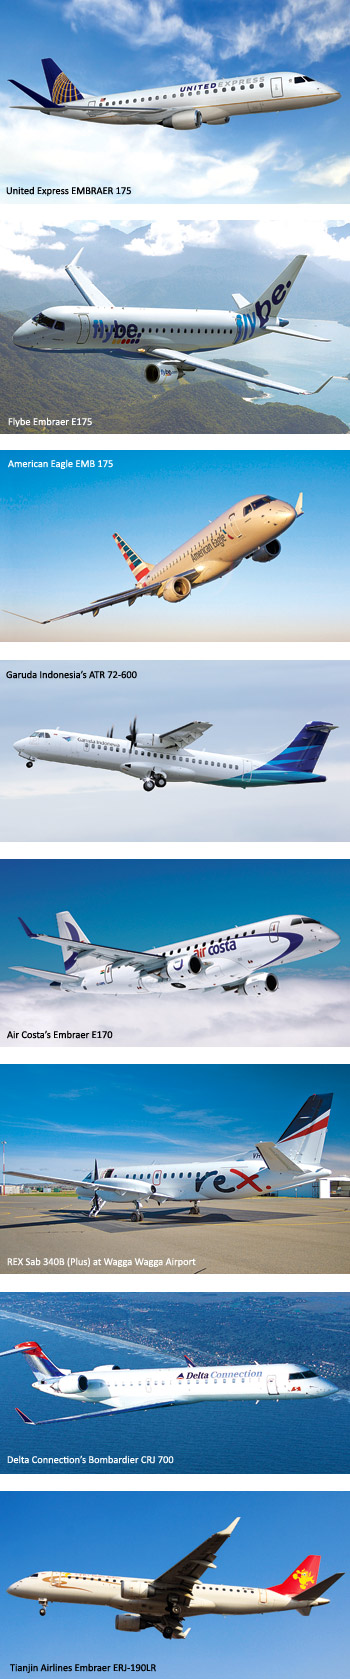 Top Regional Airlines What Clicks - SP's Aviation